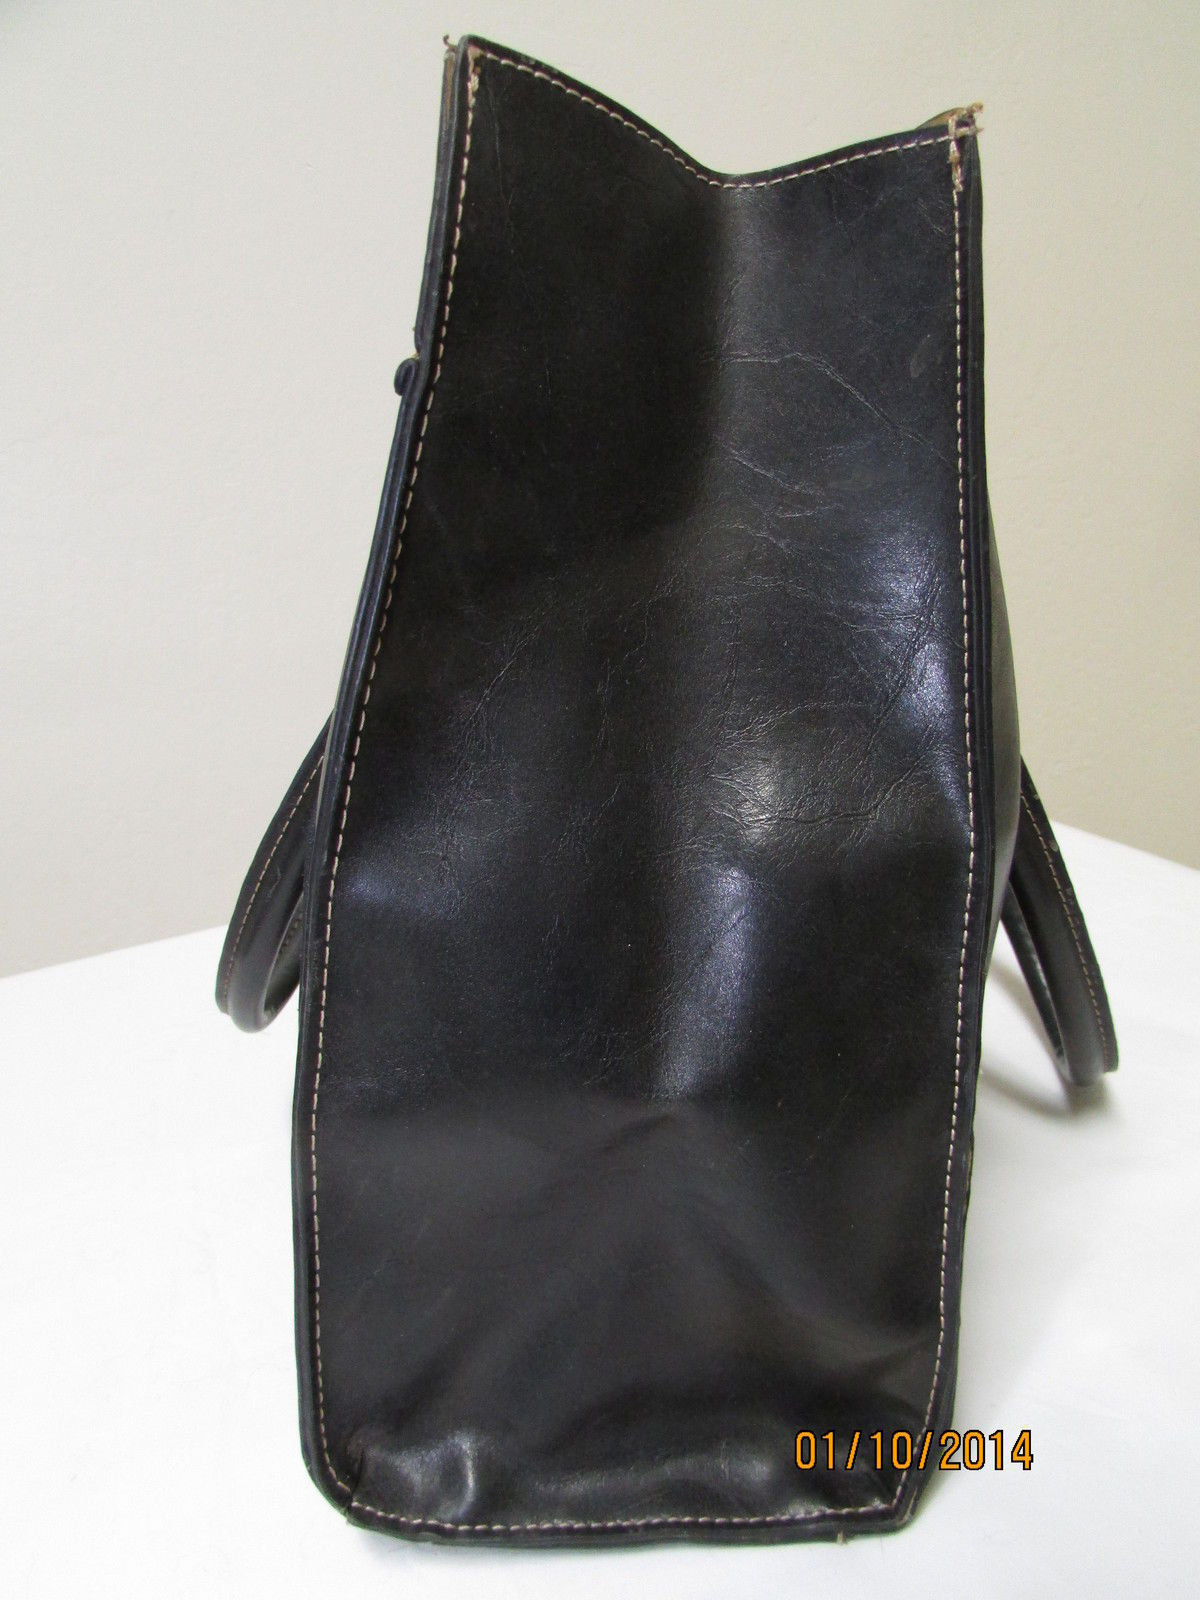 Simulated Large Black Faux Leather Shoulder Tote by Emilie M. image 3